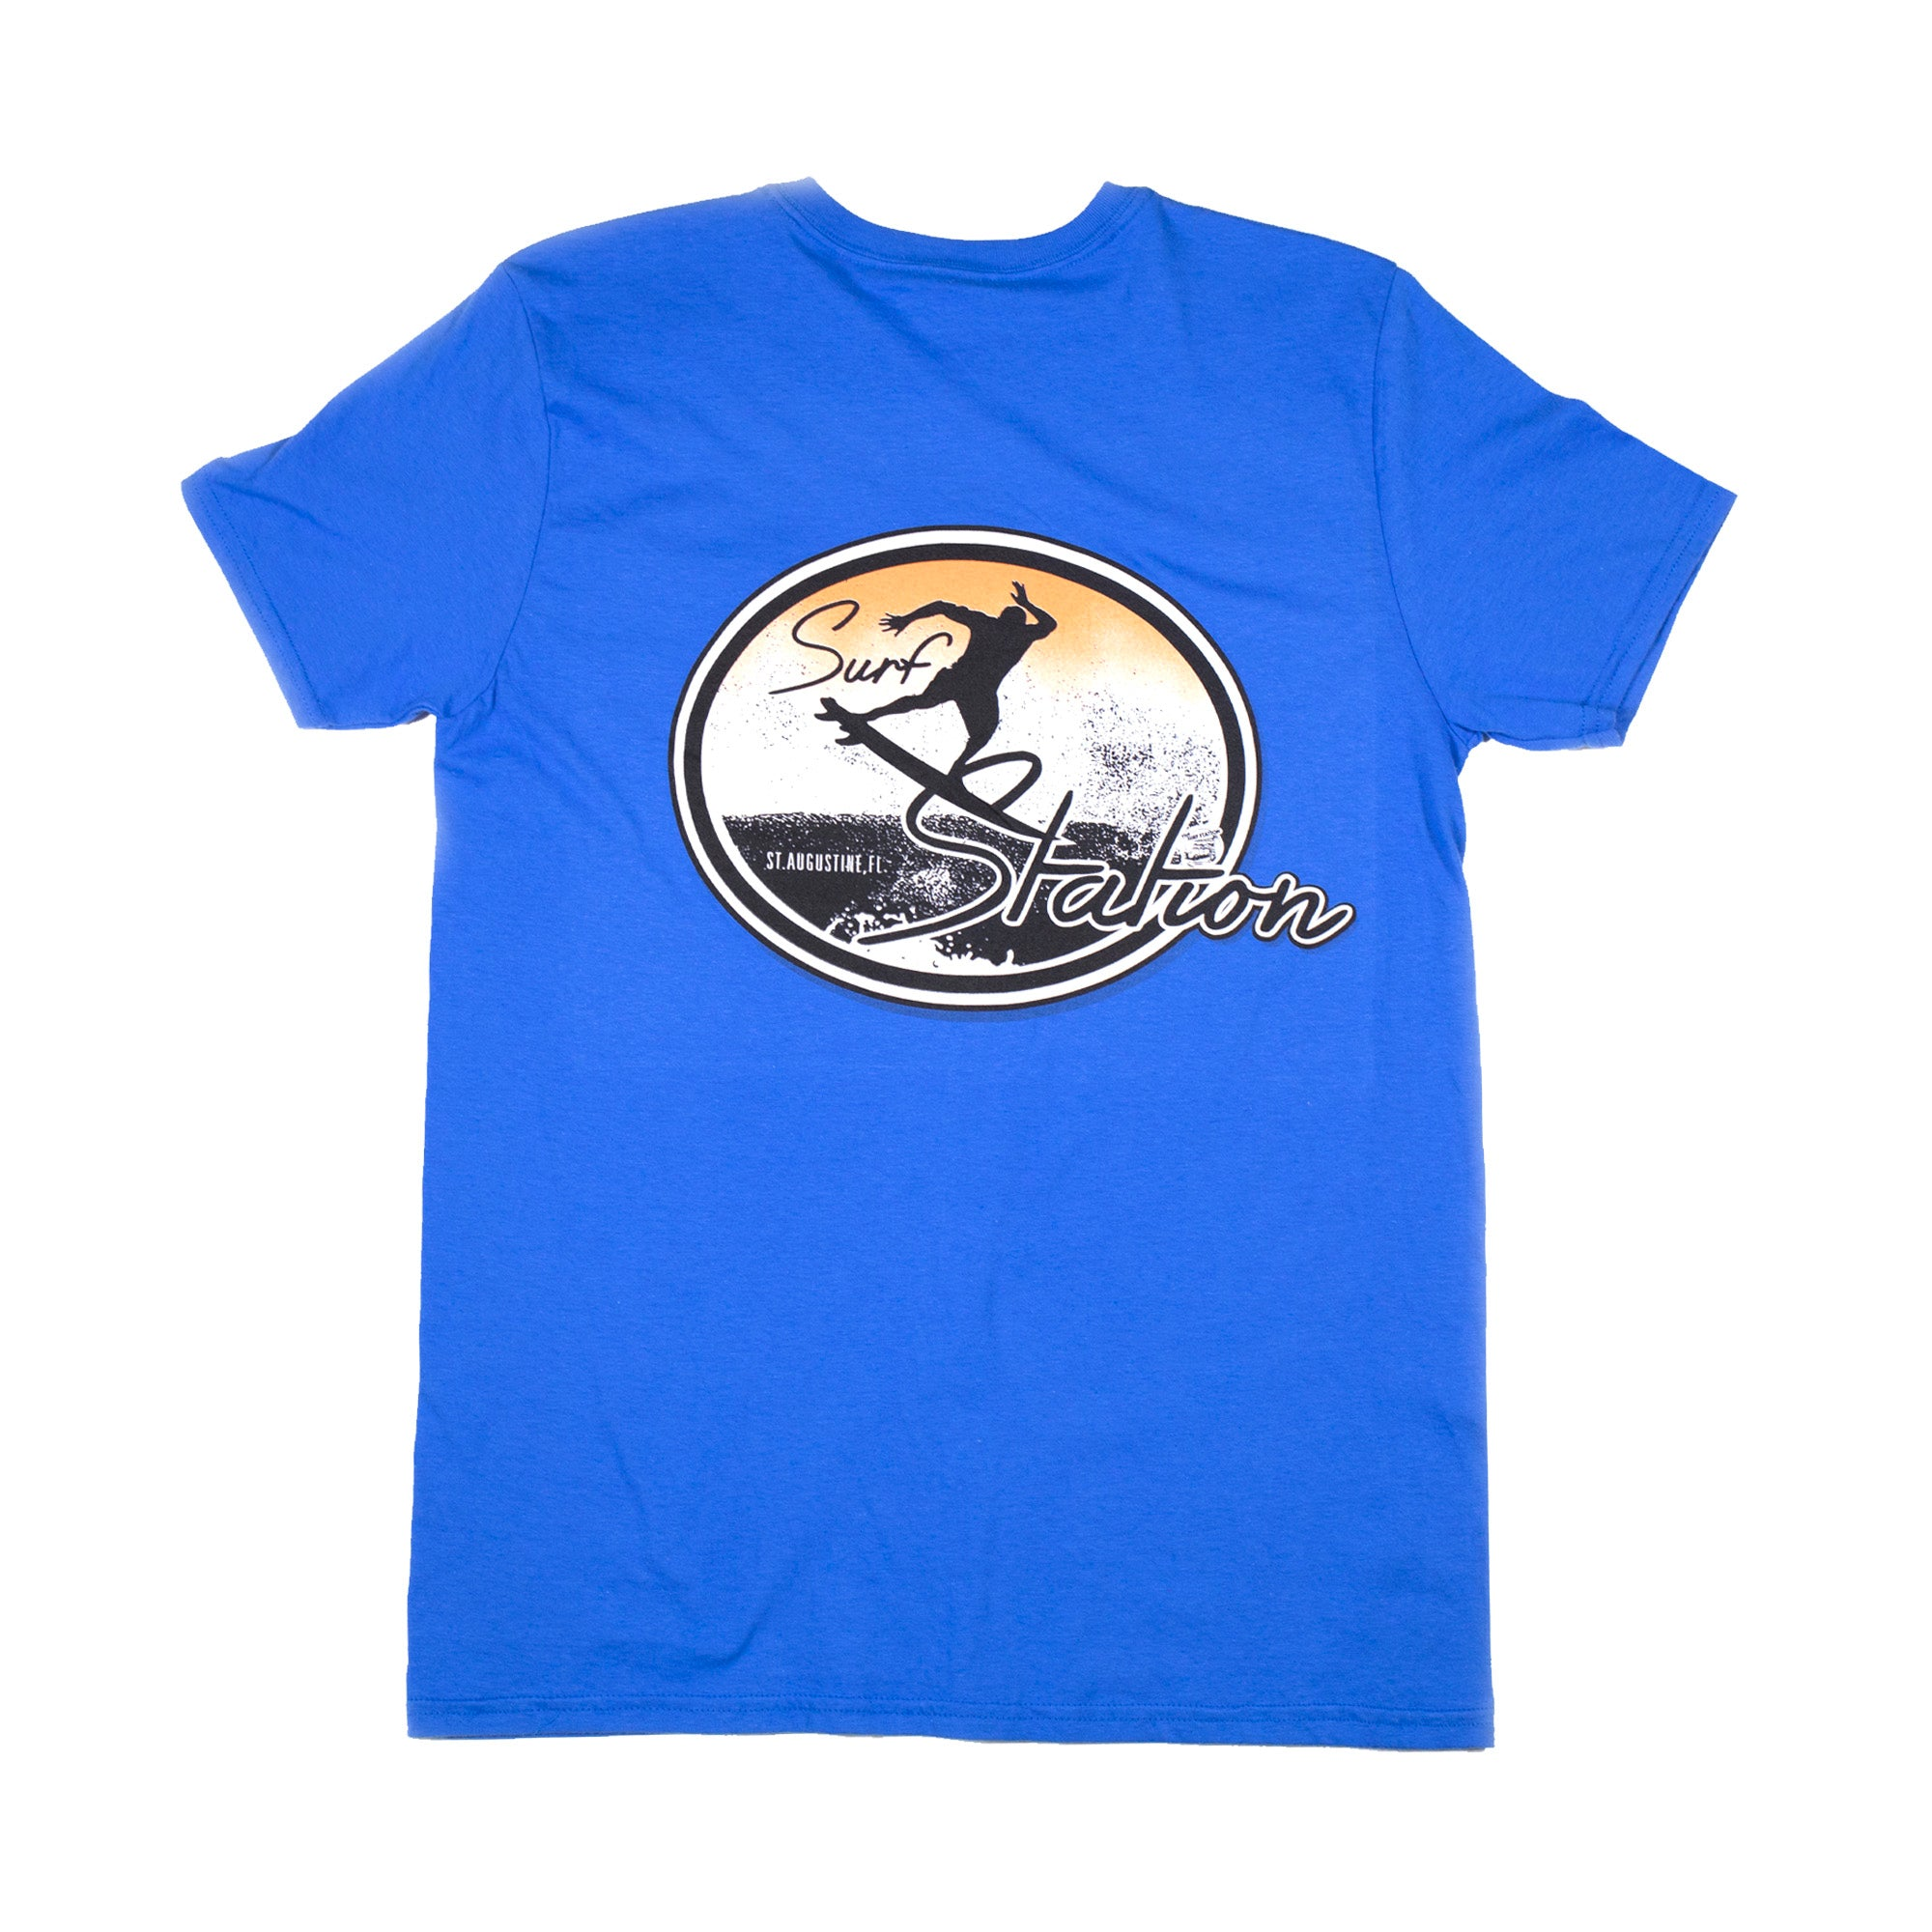 Surf Station Air All Over T-Shirt